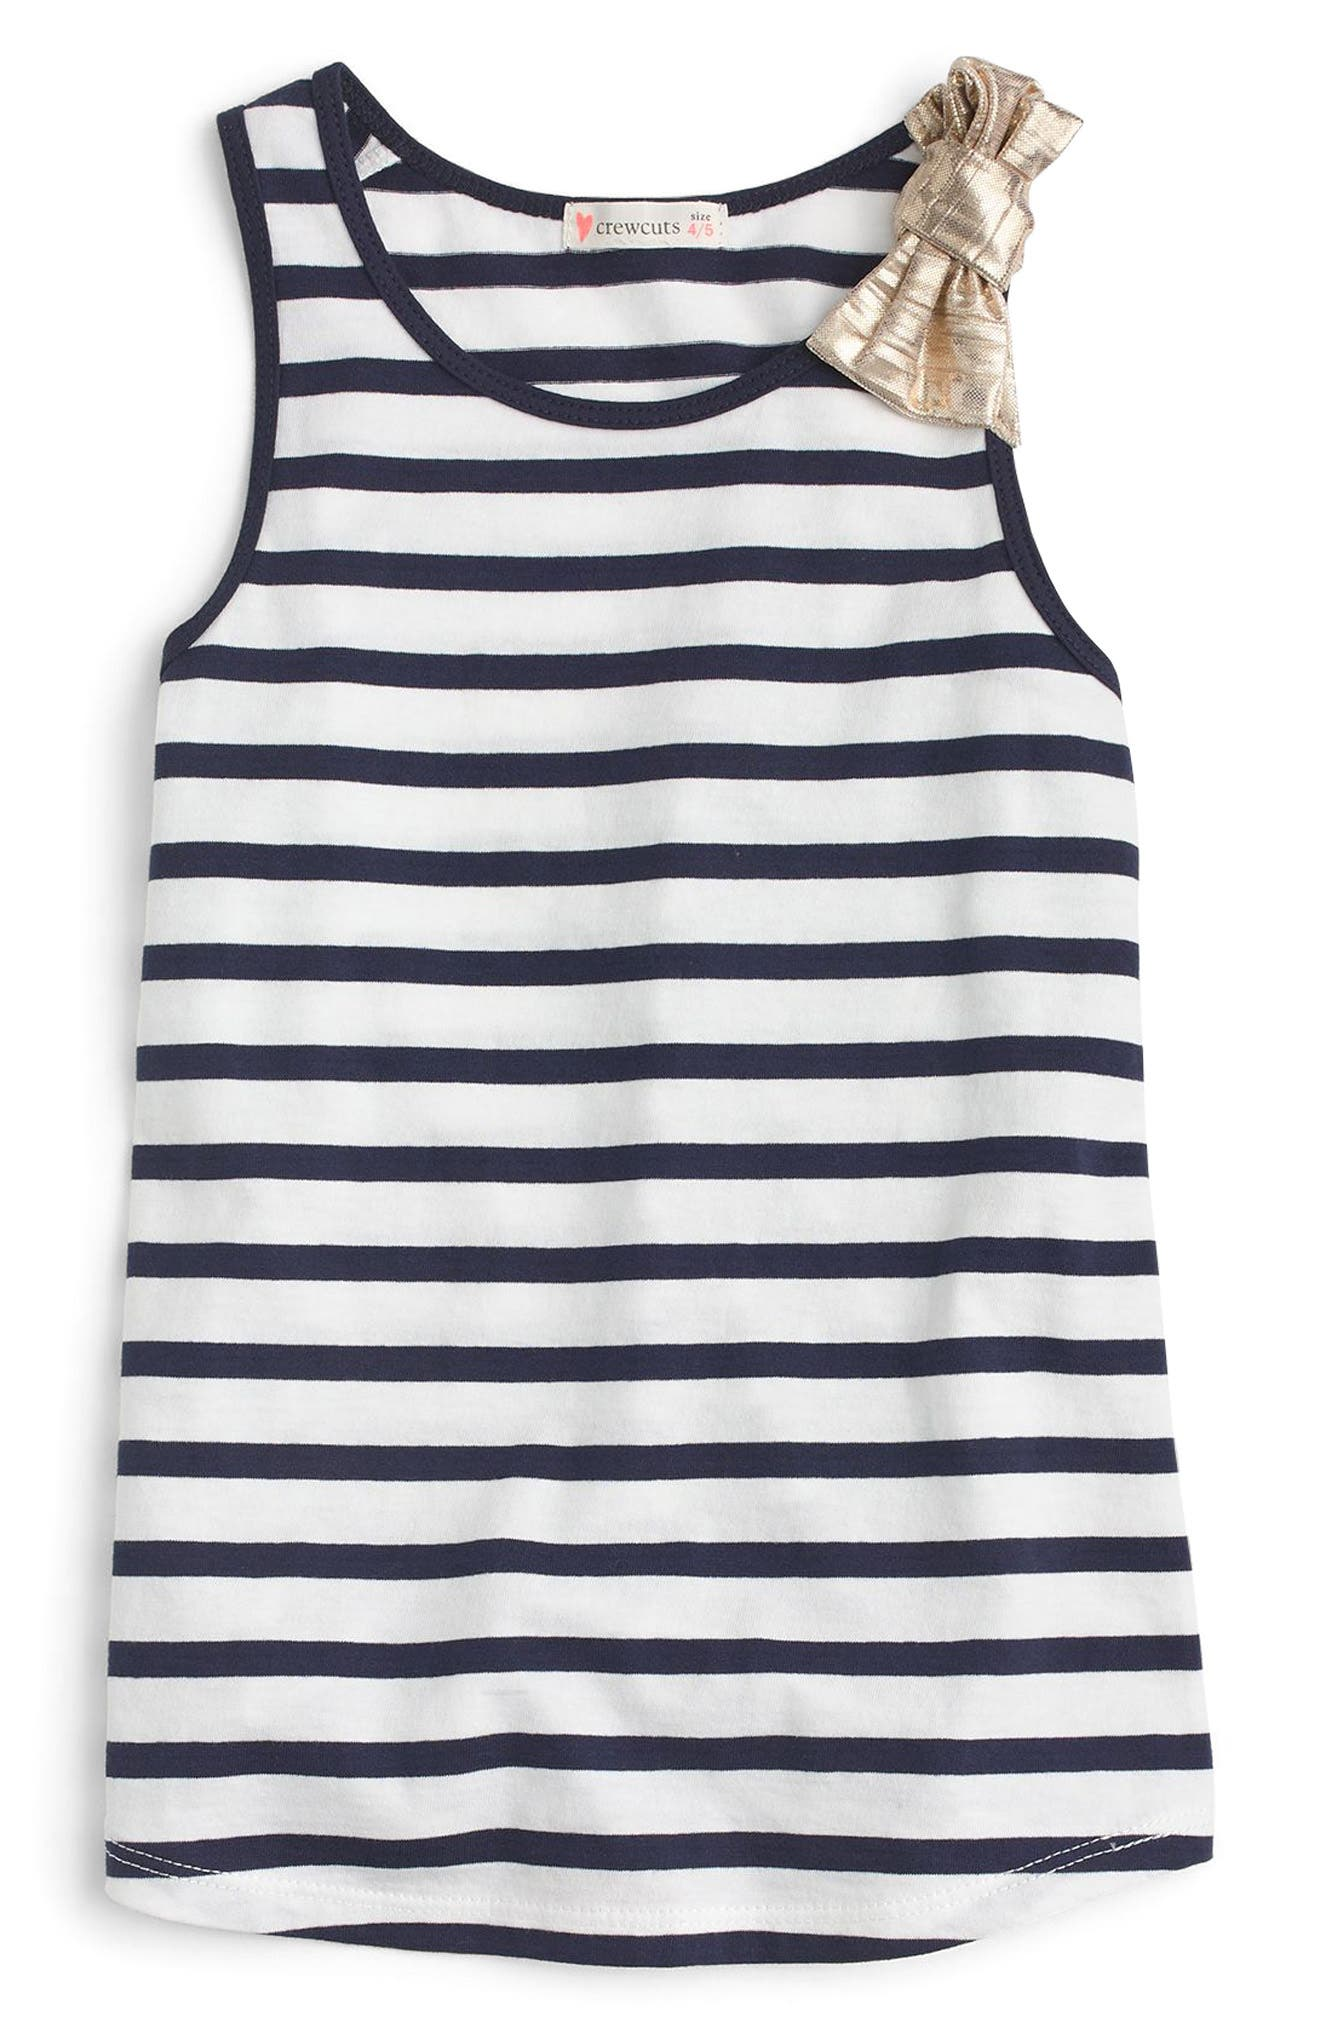 CREWCUTS BY J.CREW Stripe Bow Tank Top, Main, color, 410